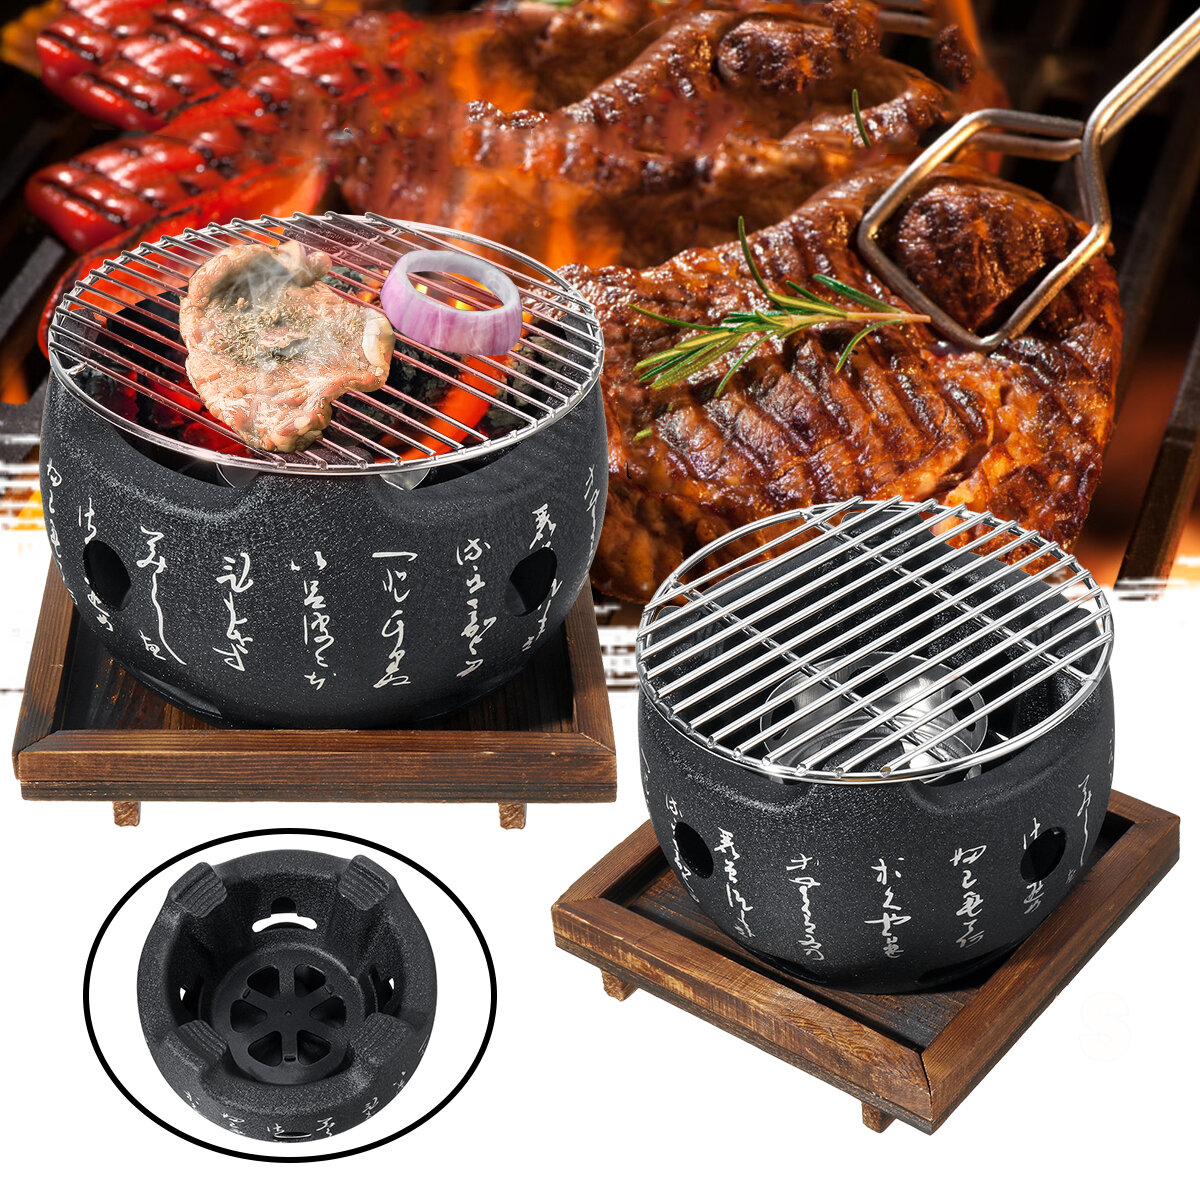 Image of Japanese Style BBQ Grill Charcoal Grill Aluminium Alloy Portable Barbecue Tools